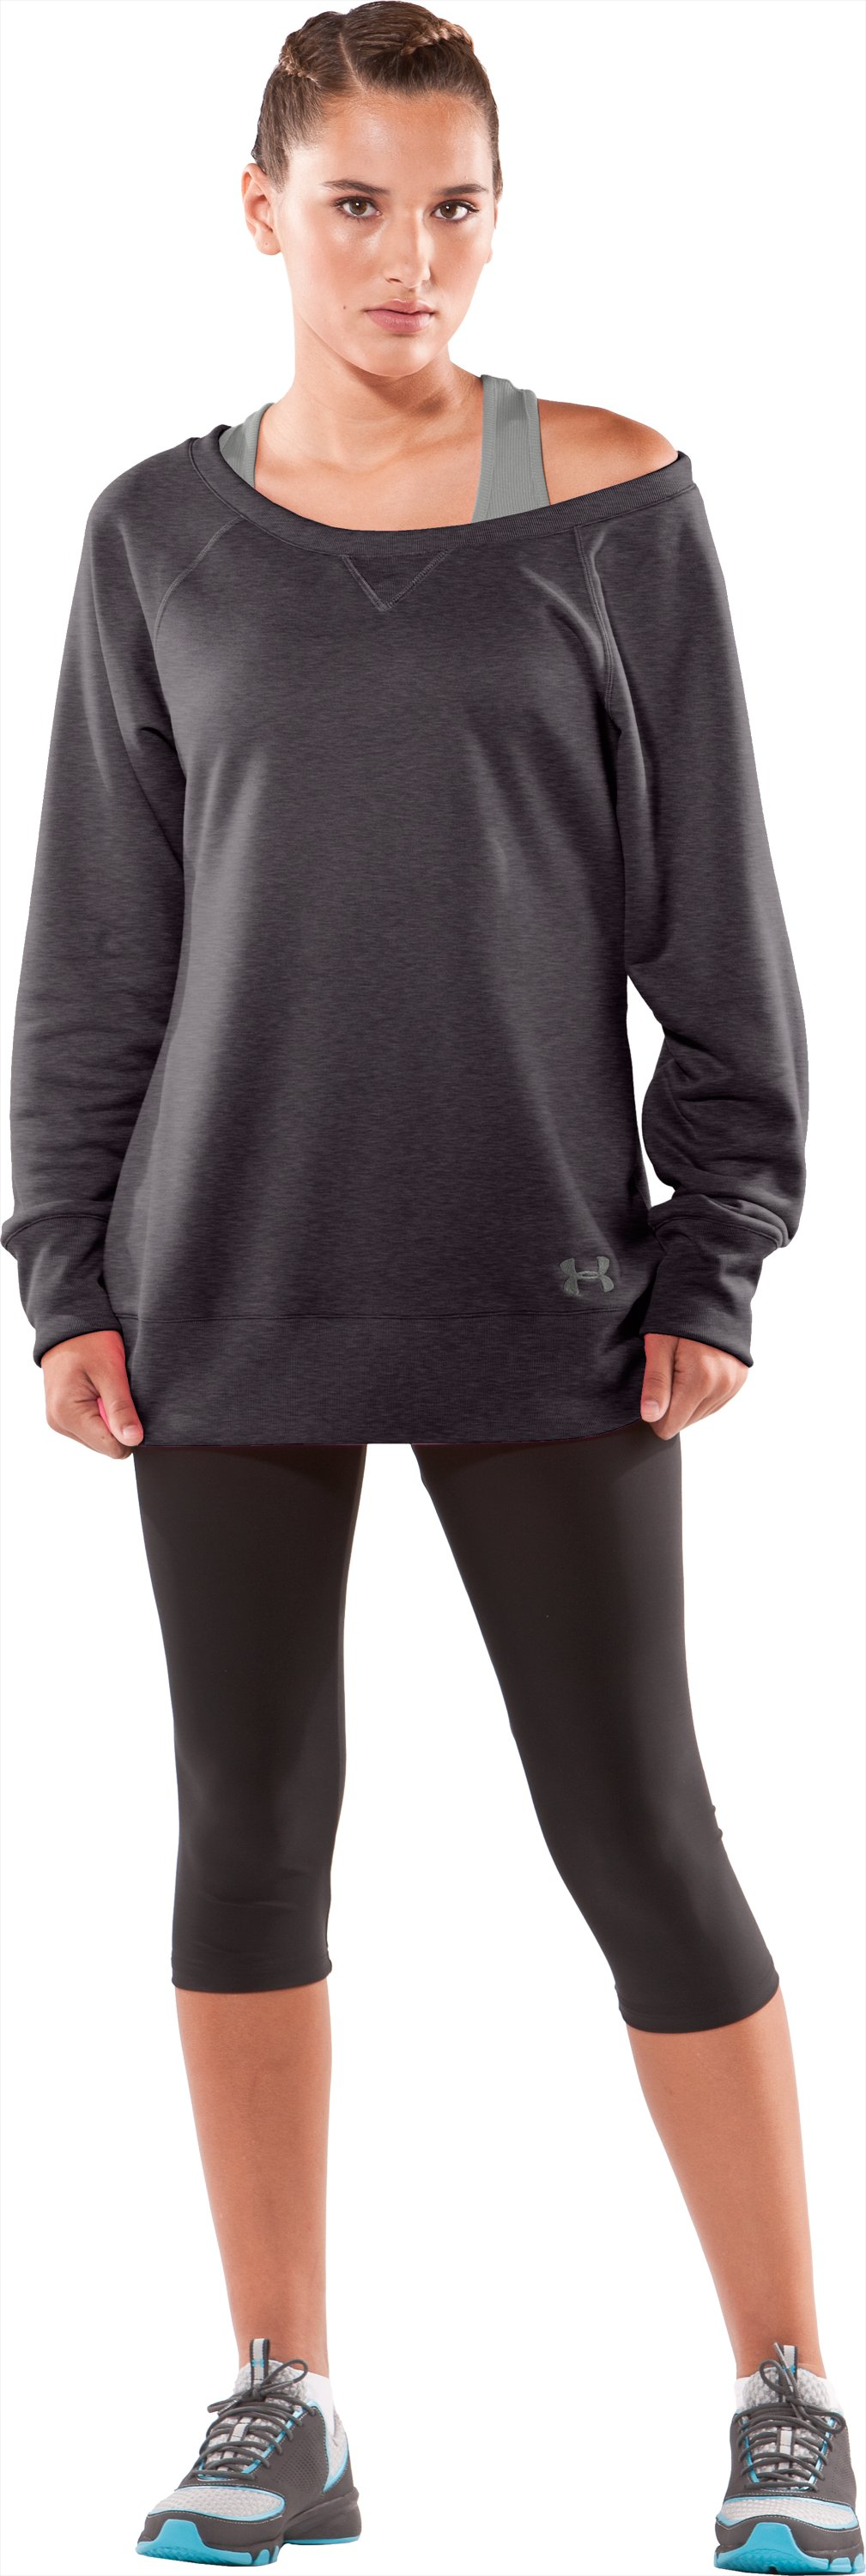 Women's Varsity Sweatshirt, Carbon Heather, zoomed image